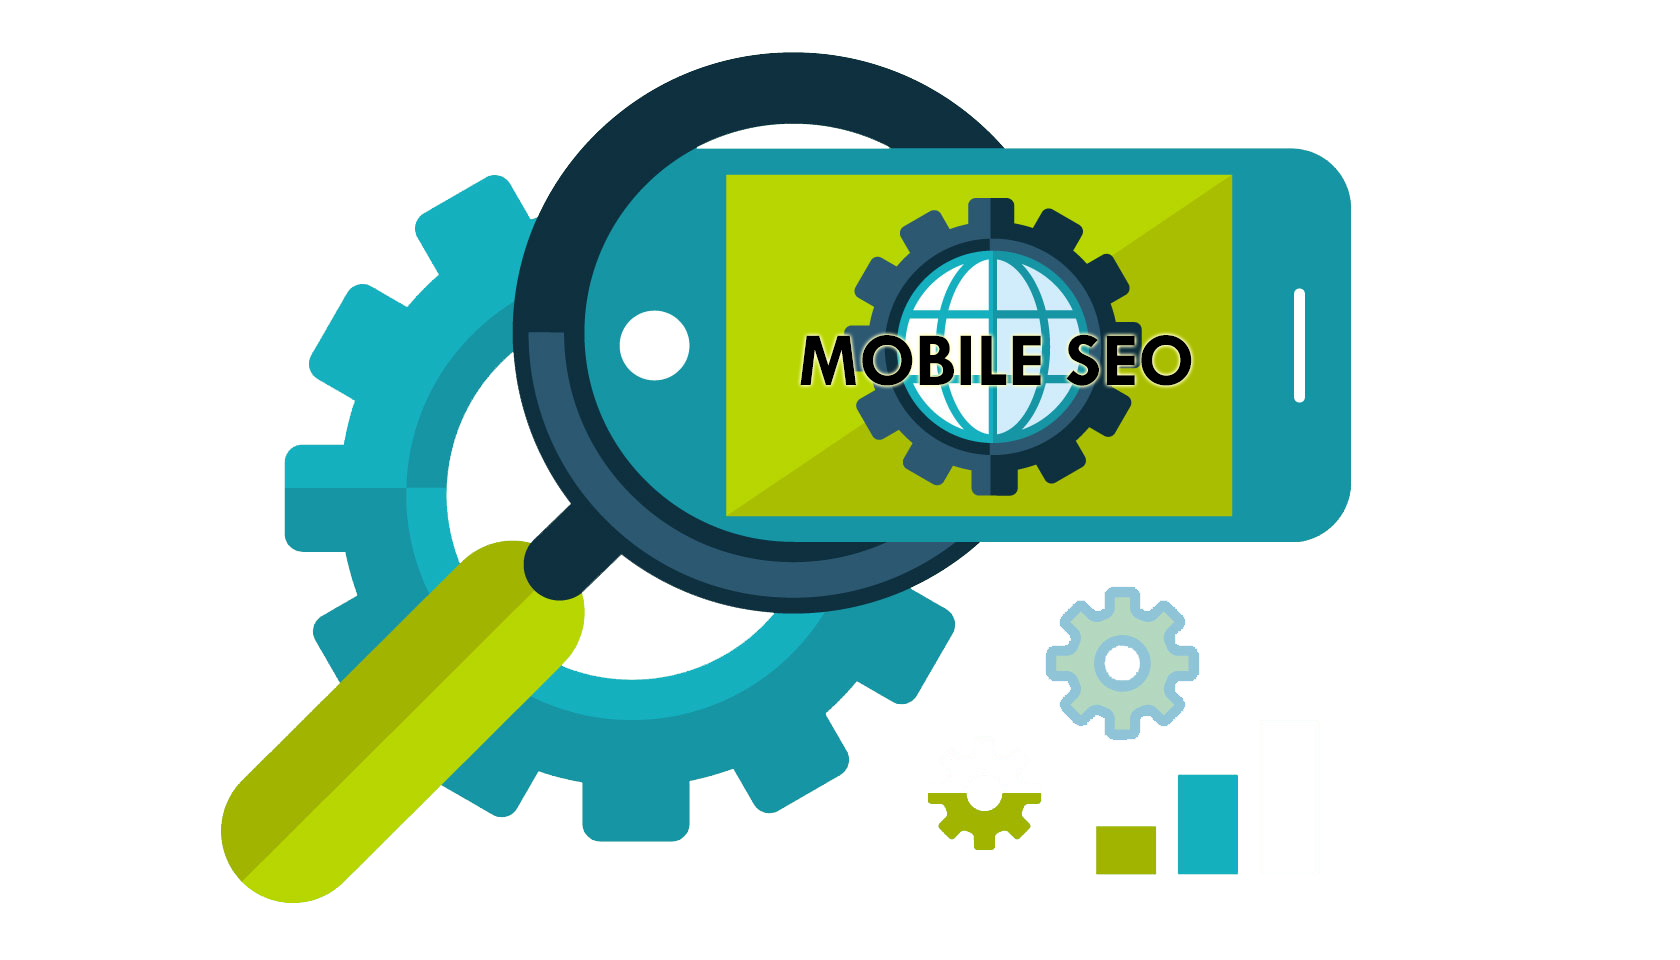 mobile seo packages in Kolkata india, mobile seo packages pricing kolkata india, mobile seo pricing and plans, best mobile seo packages Kolkata india, mobile seo packages and services